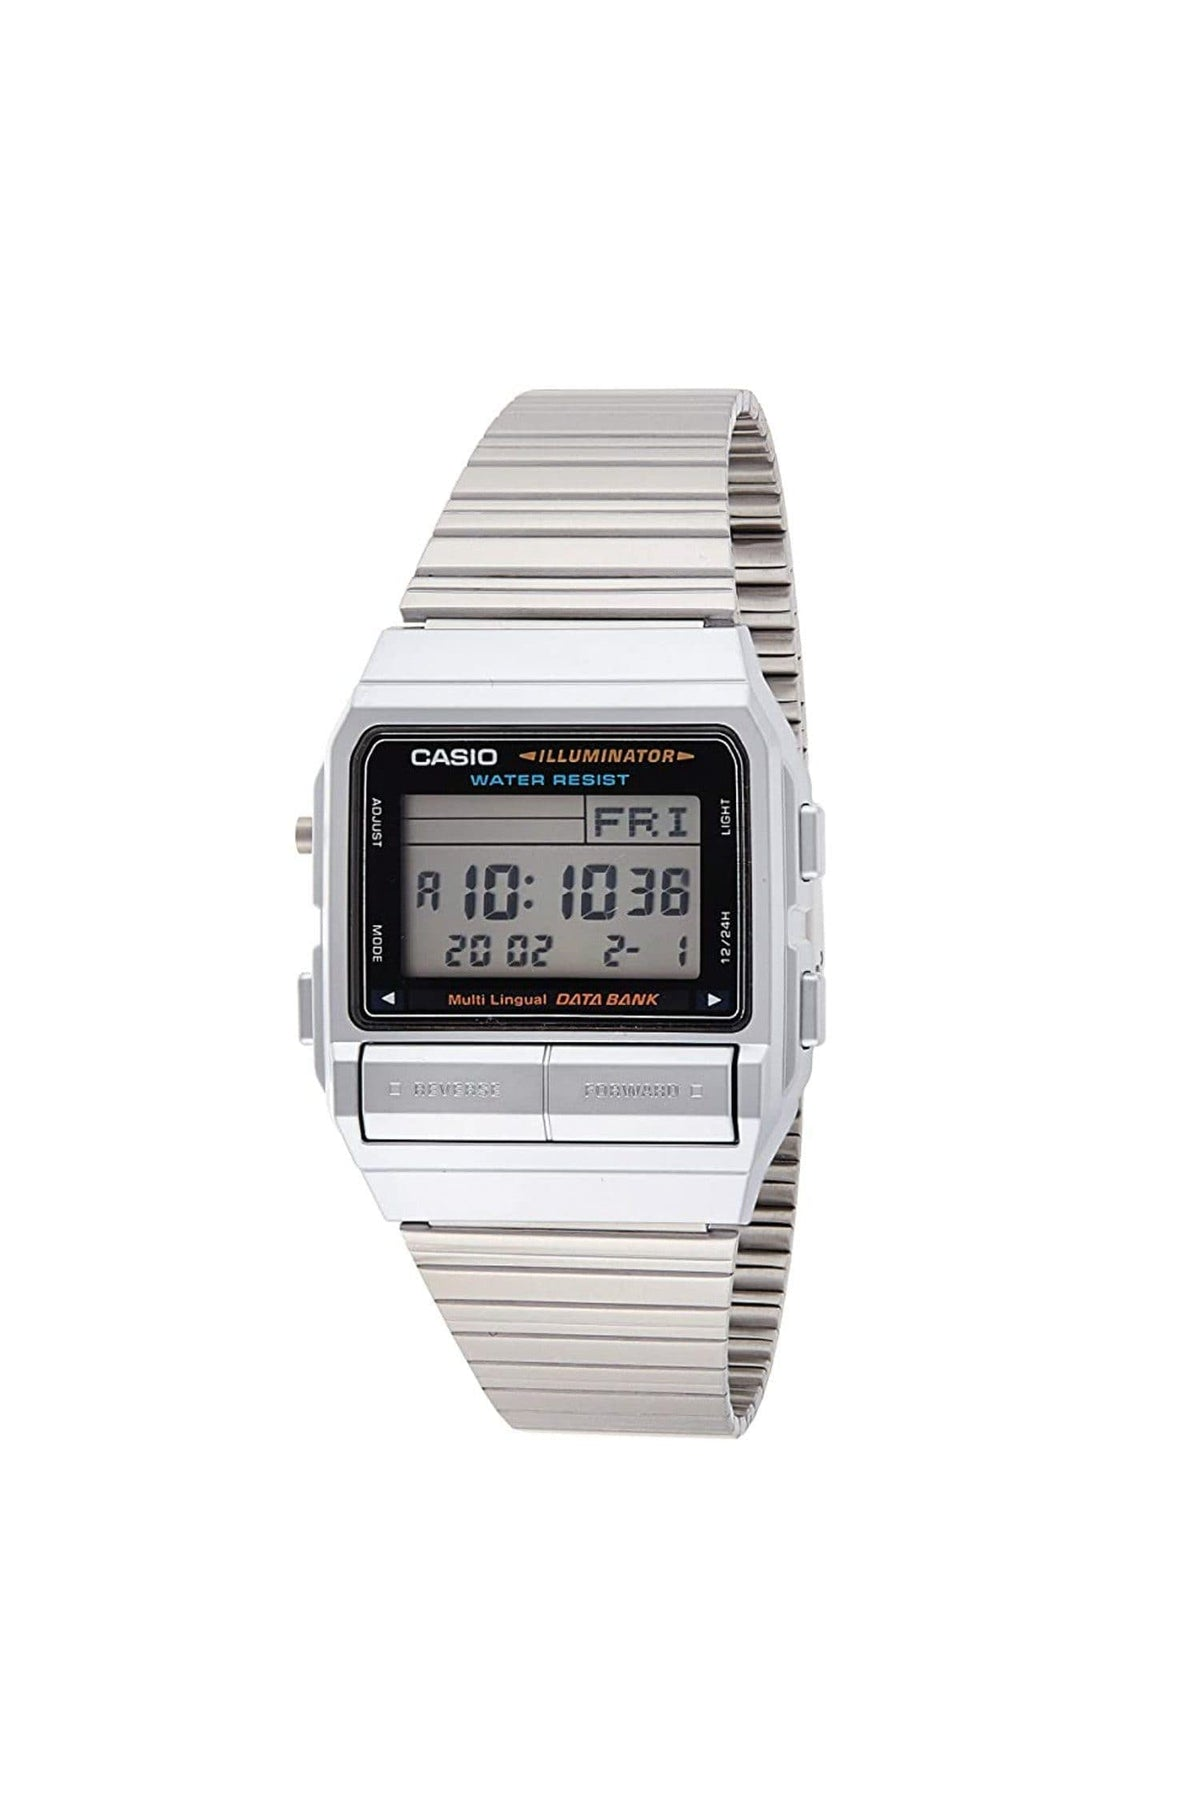 WCHD3801 - Casio Illuminator Men's Watch